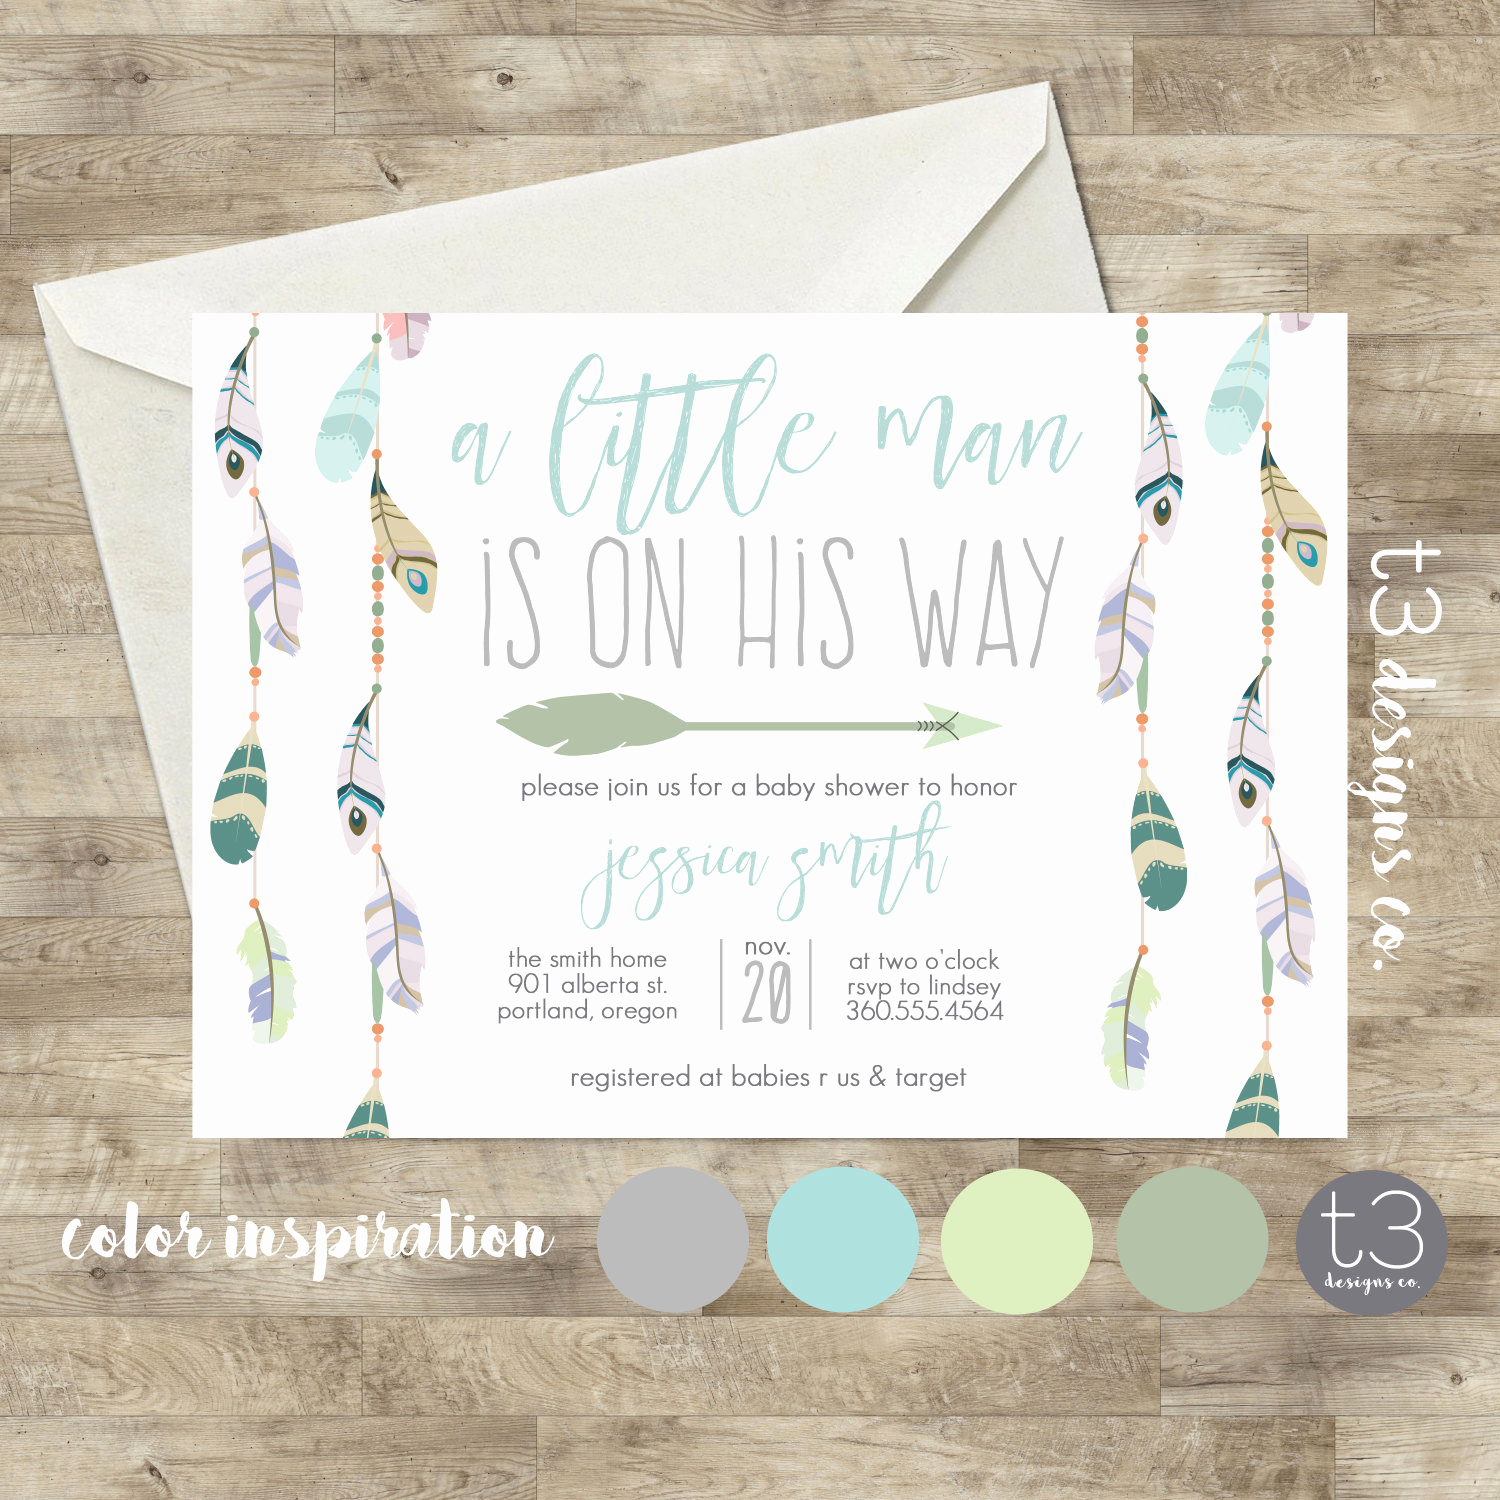 Boho Baby Shower Invitation New Baby Shower Invitation Boho Baby Shower Invite Native